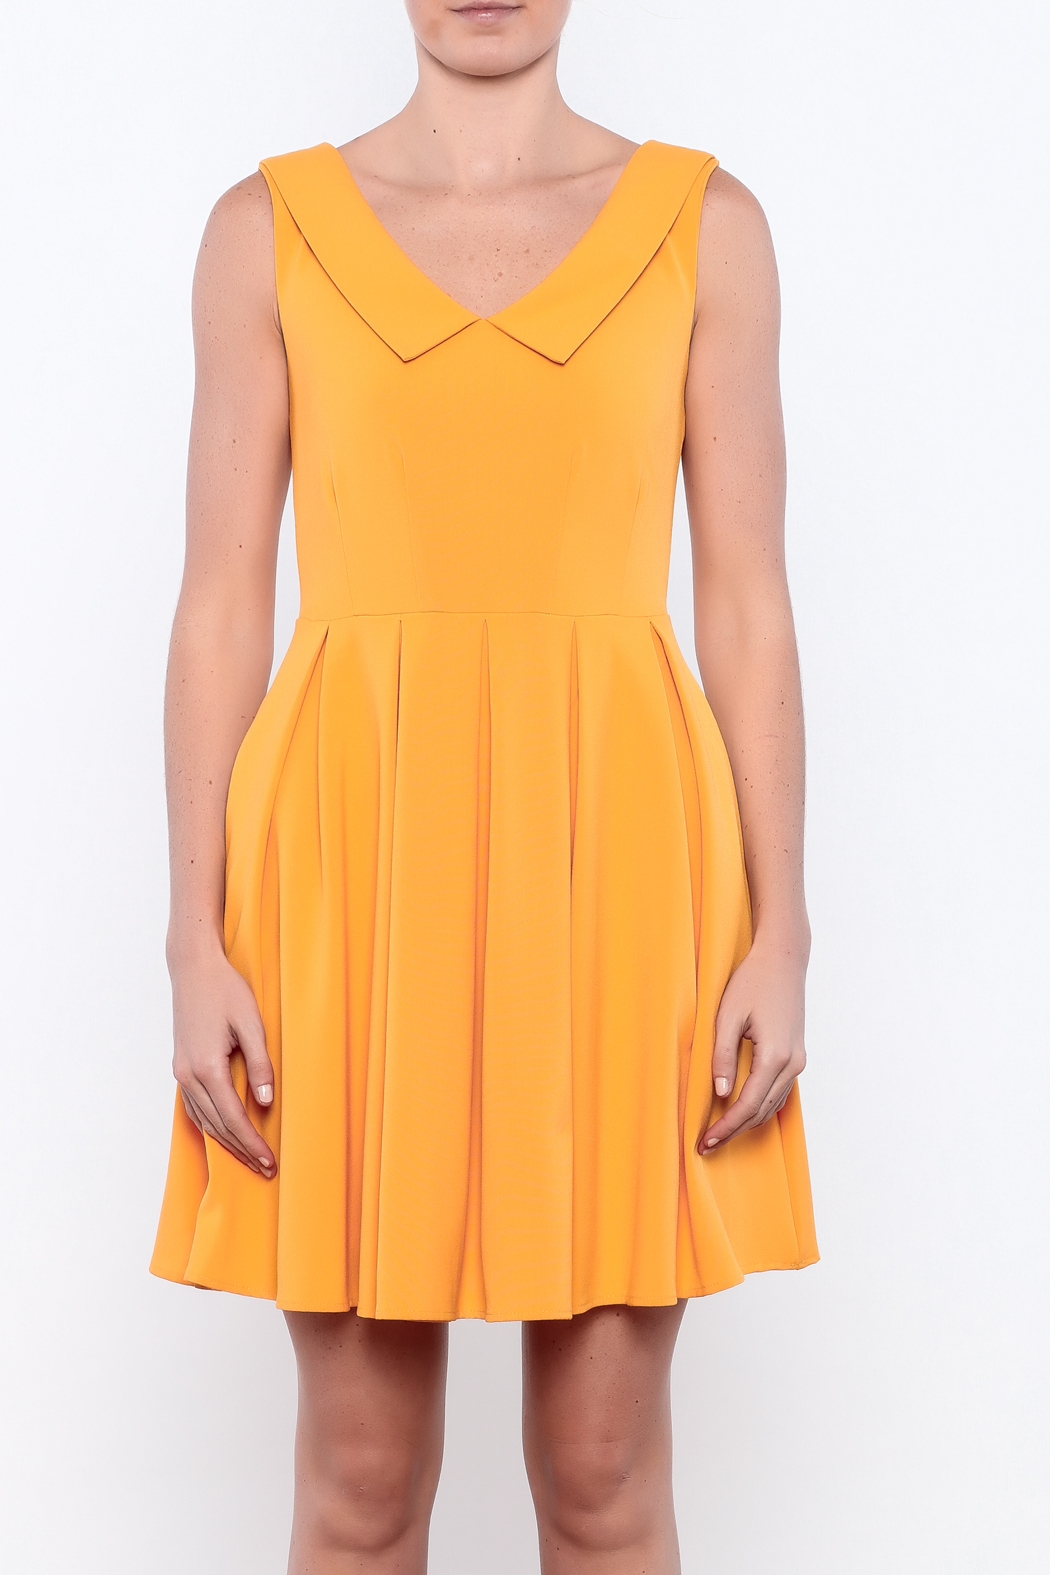 Apricity Mustard Sunday Dress - Side Cropped Image